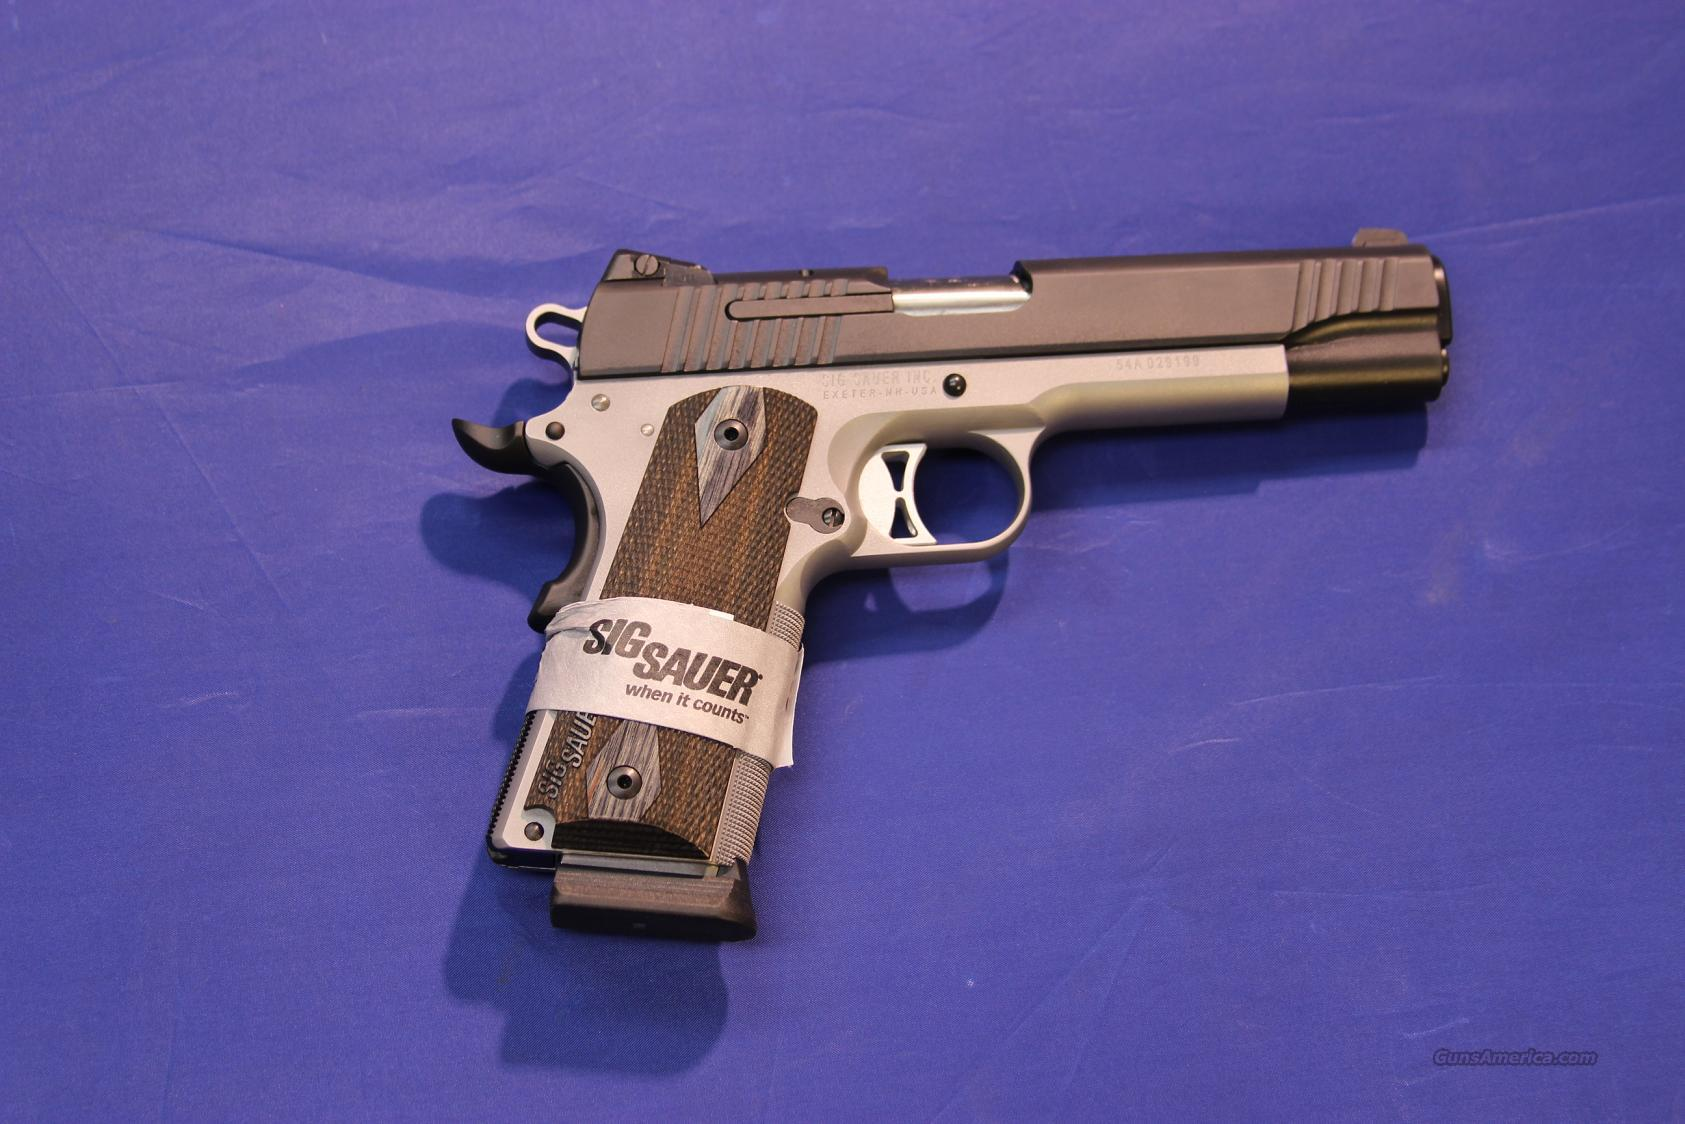 *****SOLD***** SIG SAUER TRADITIONAL 1911 .45 ACP - NEW!  Guns > Pistols > Sig - Sauer/Sigarms Pistols > 1911